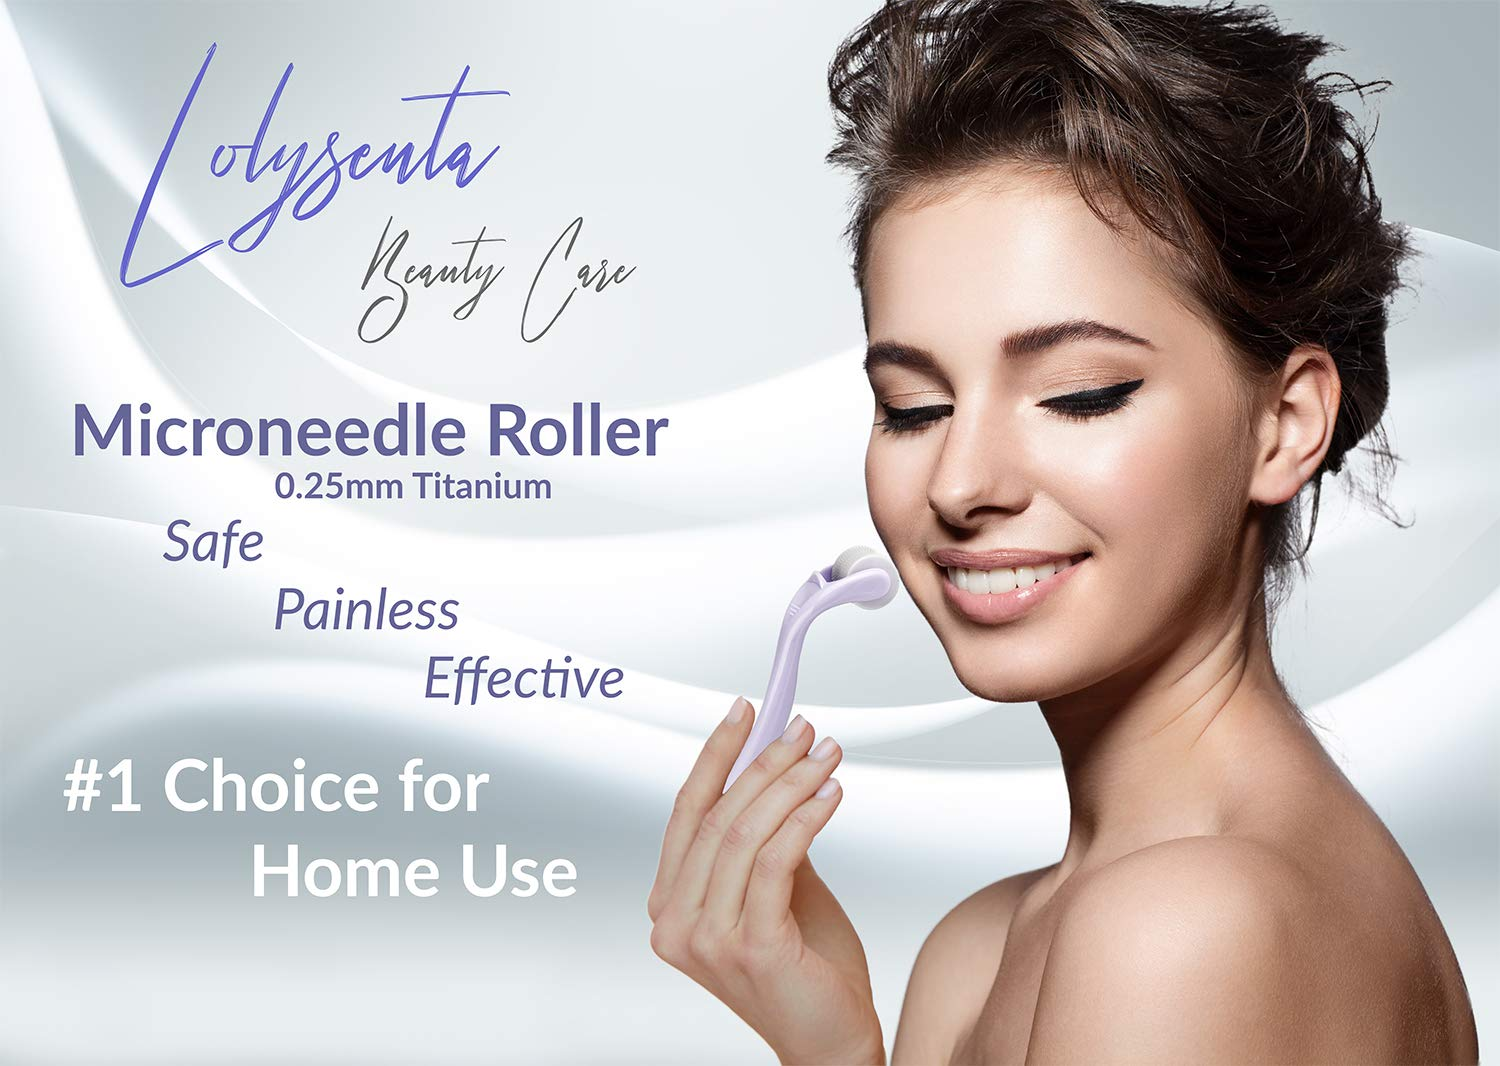 Lolysenta Derma Roller 0 25mm, Titanium Microneedle Roller for Face,  Microdermabrasion Facial Roller,